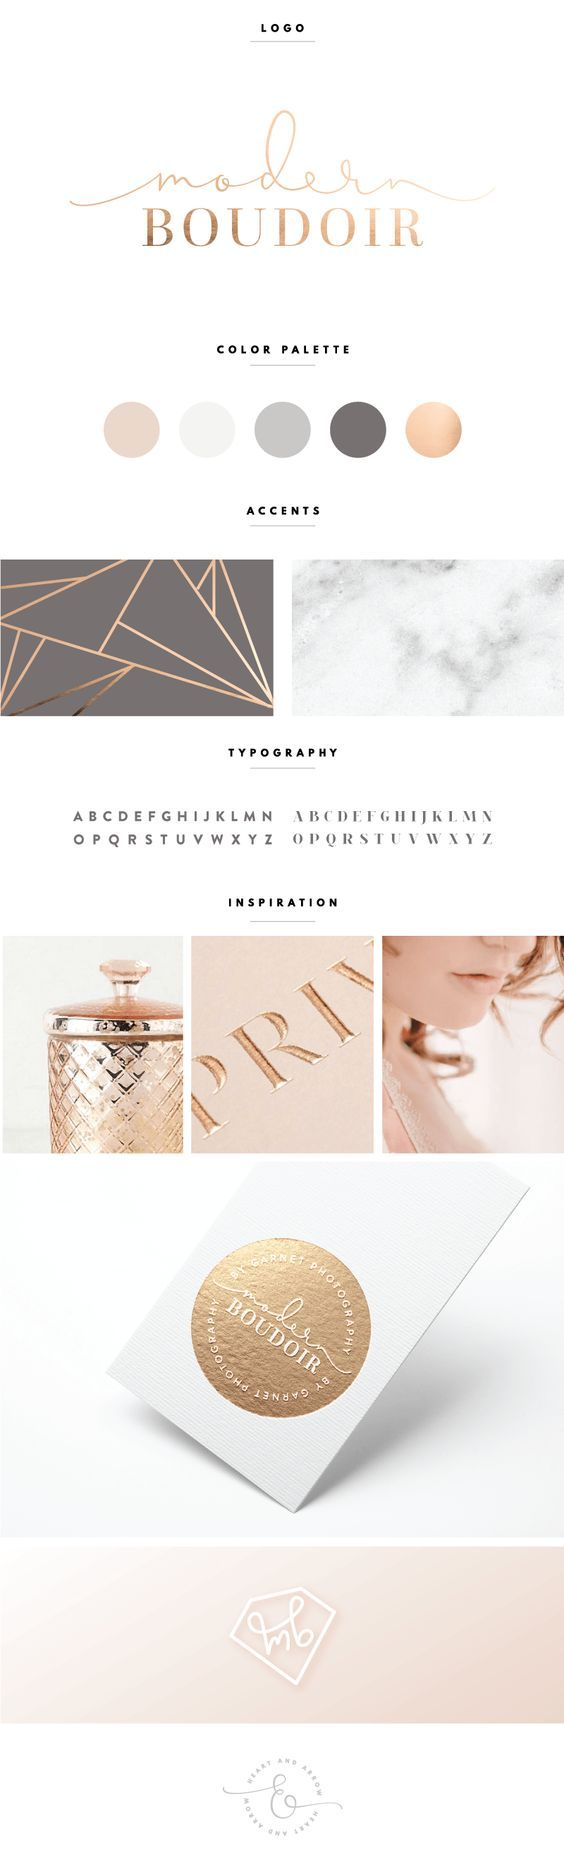 Rose Gold and Gray Brand Design | by Heart & Arrow: